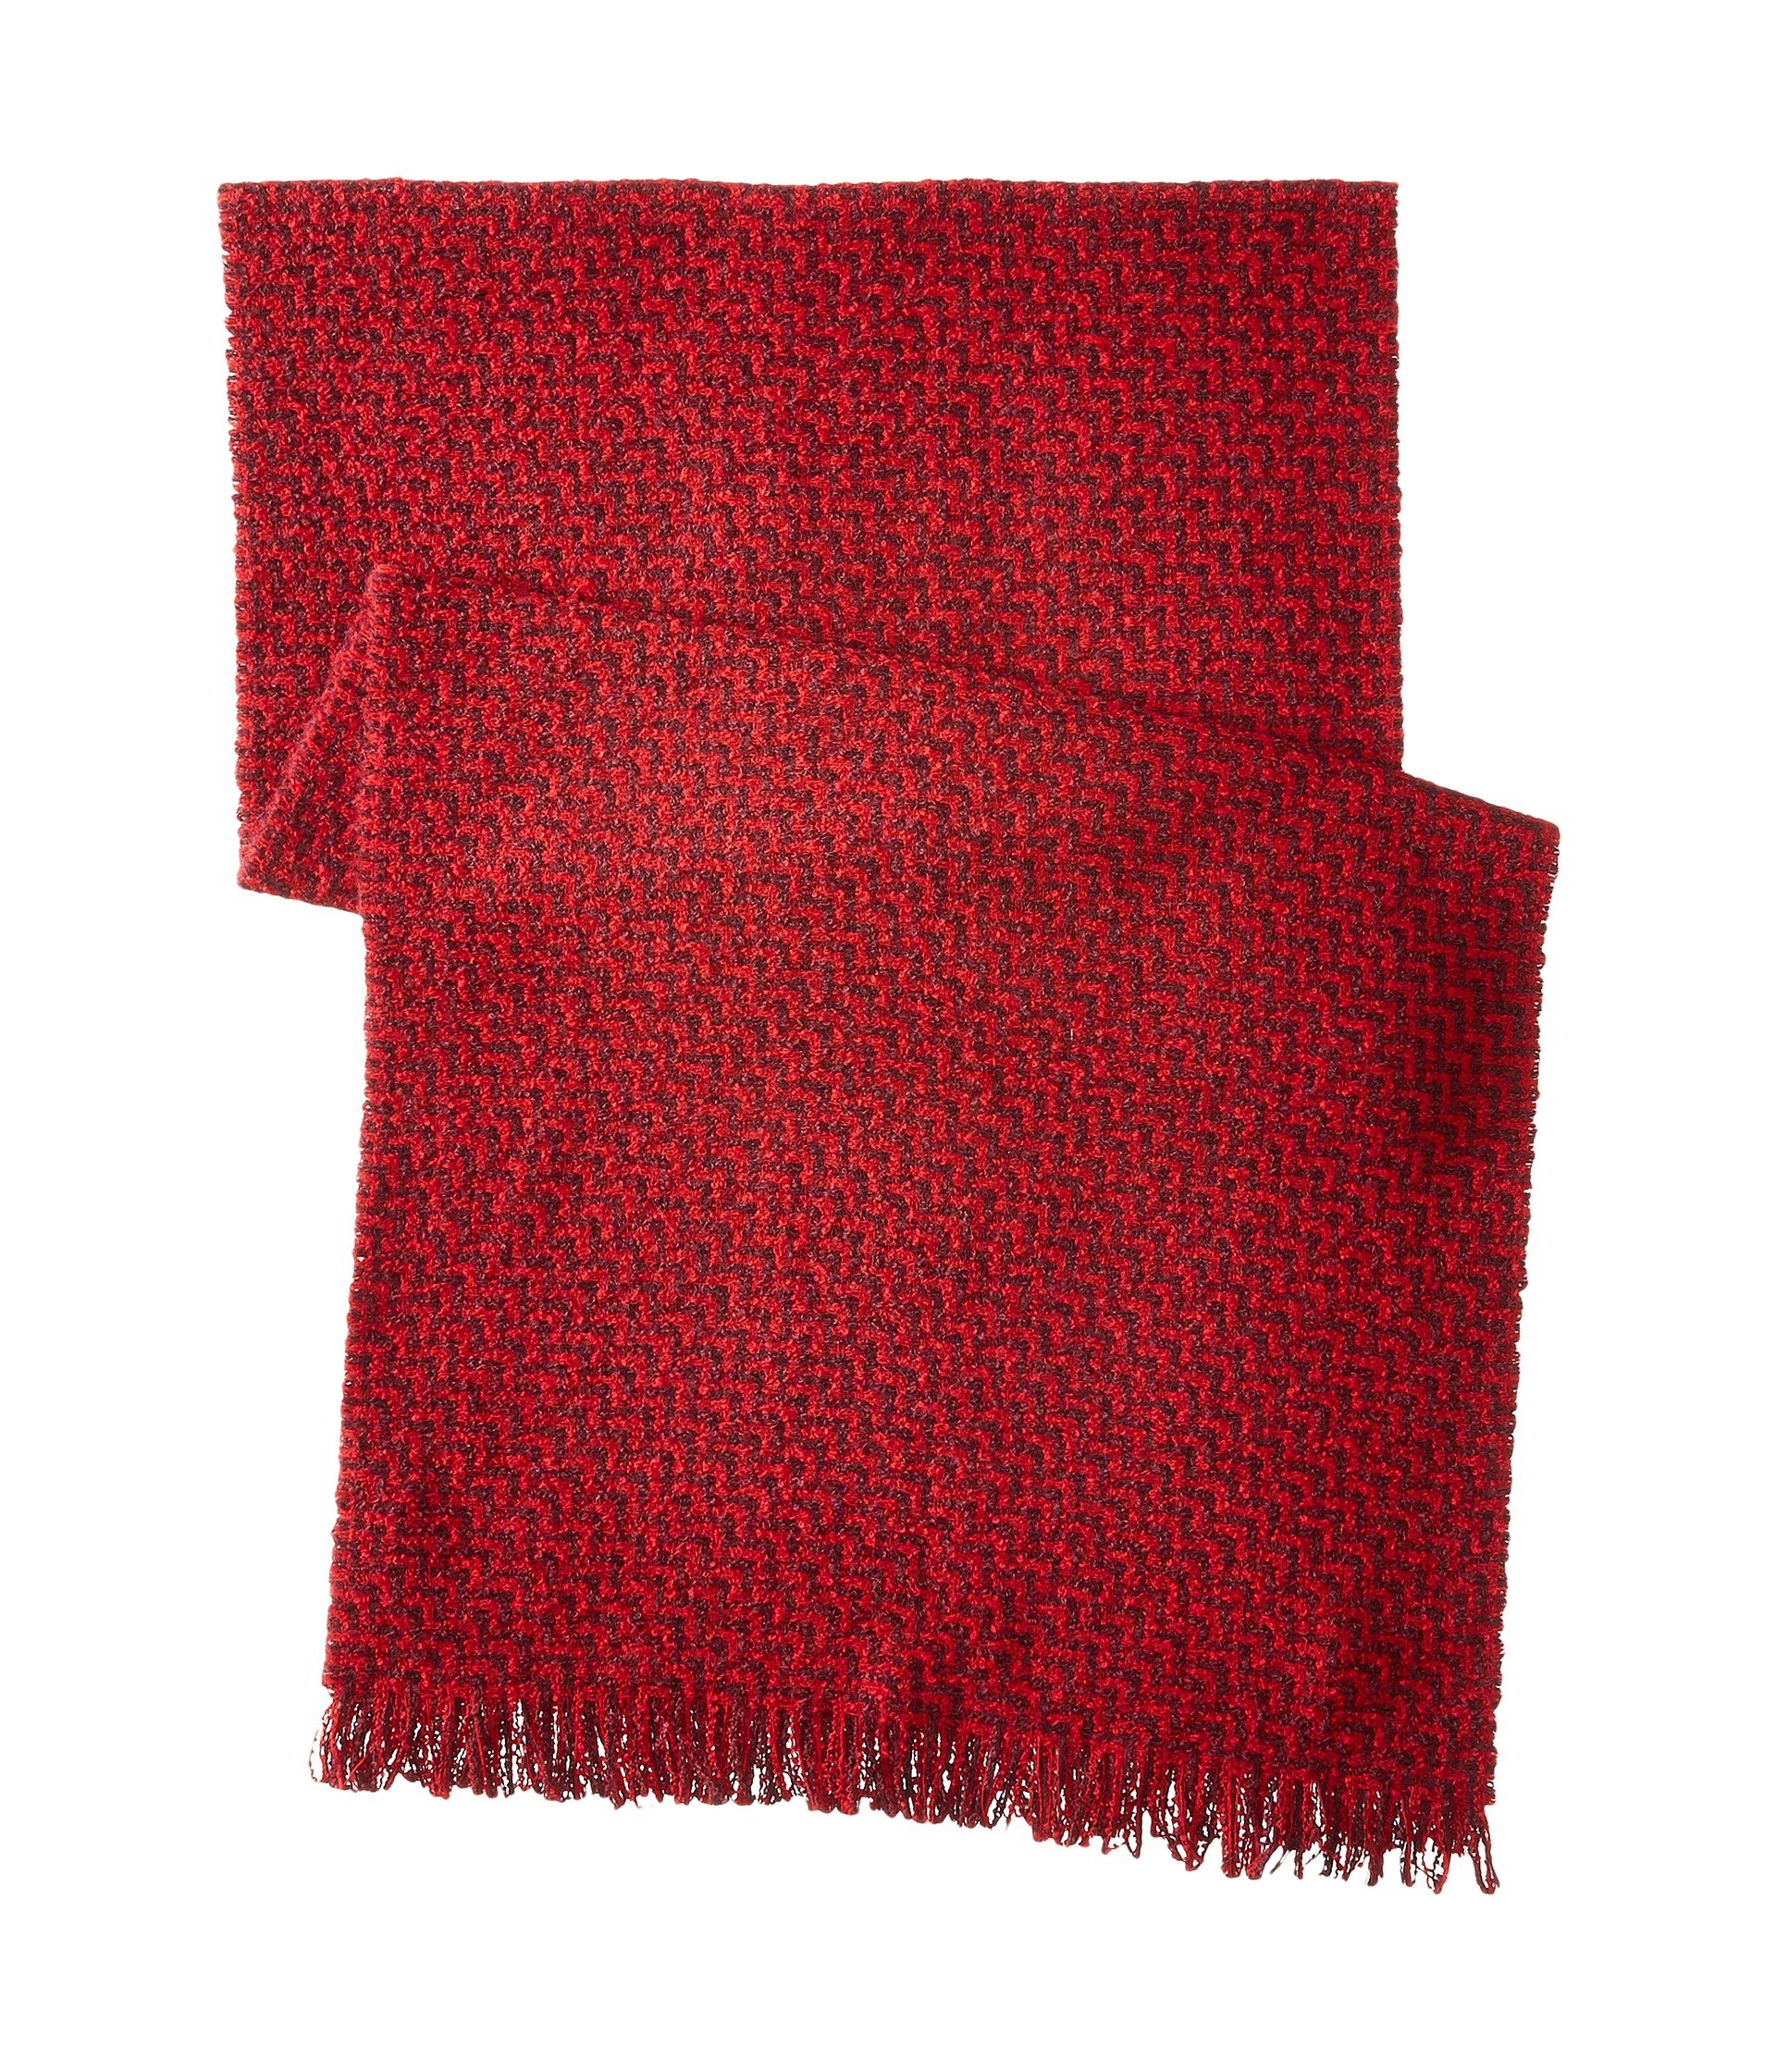 Lyst - Scotch & Soda Chunky Boucle Yarn Scarf In Graphic Pattern in Red